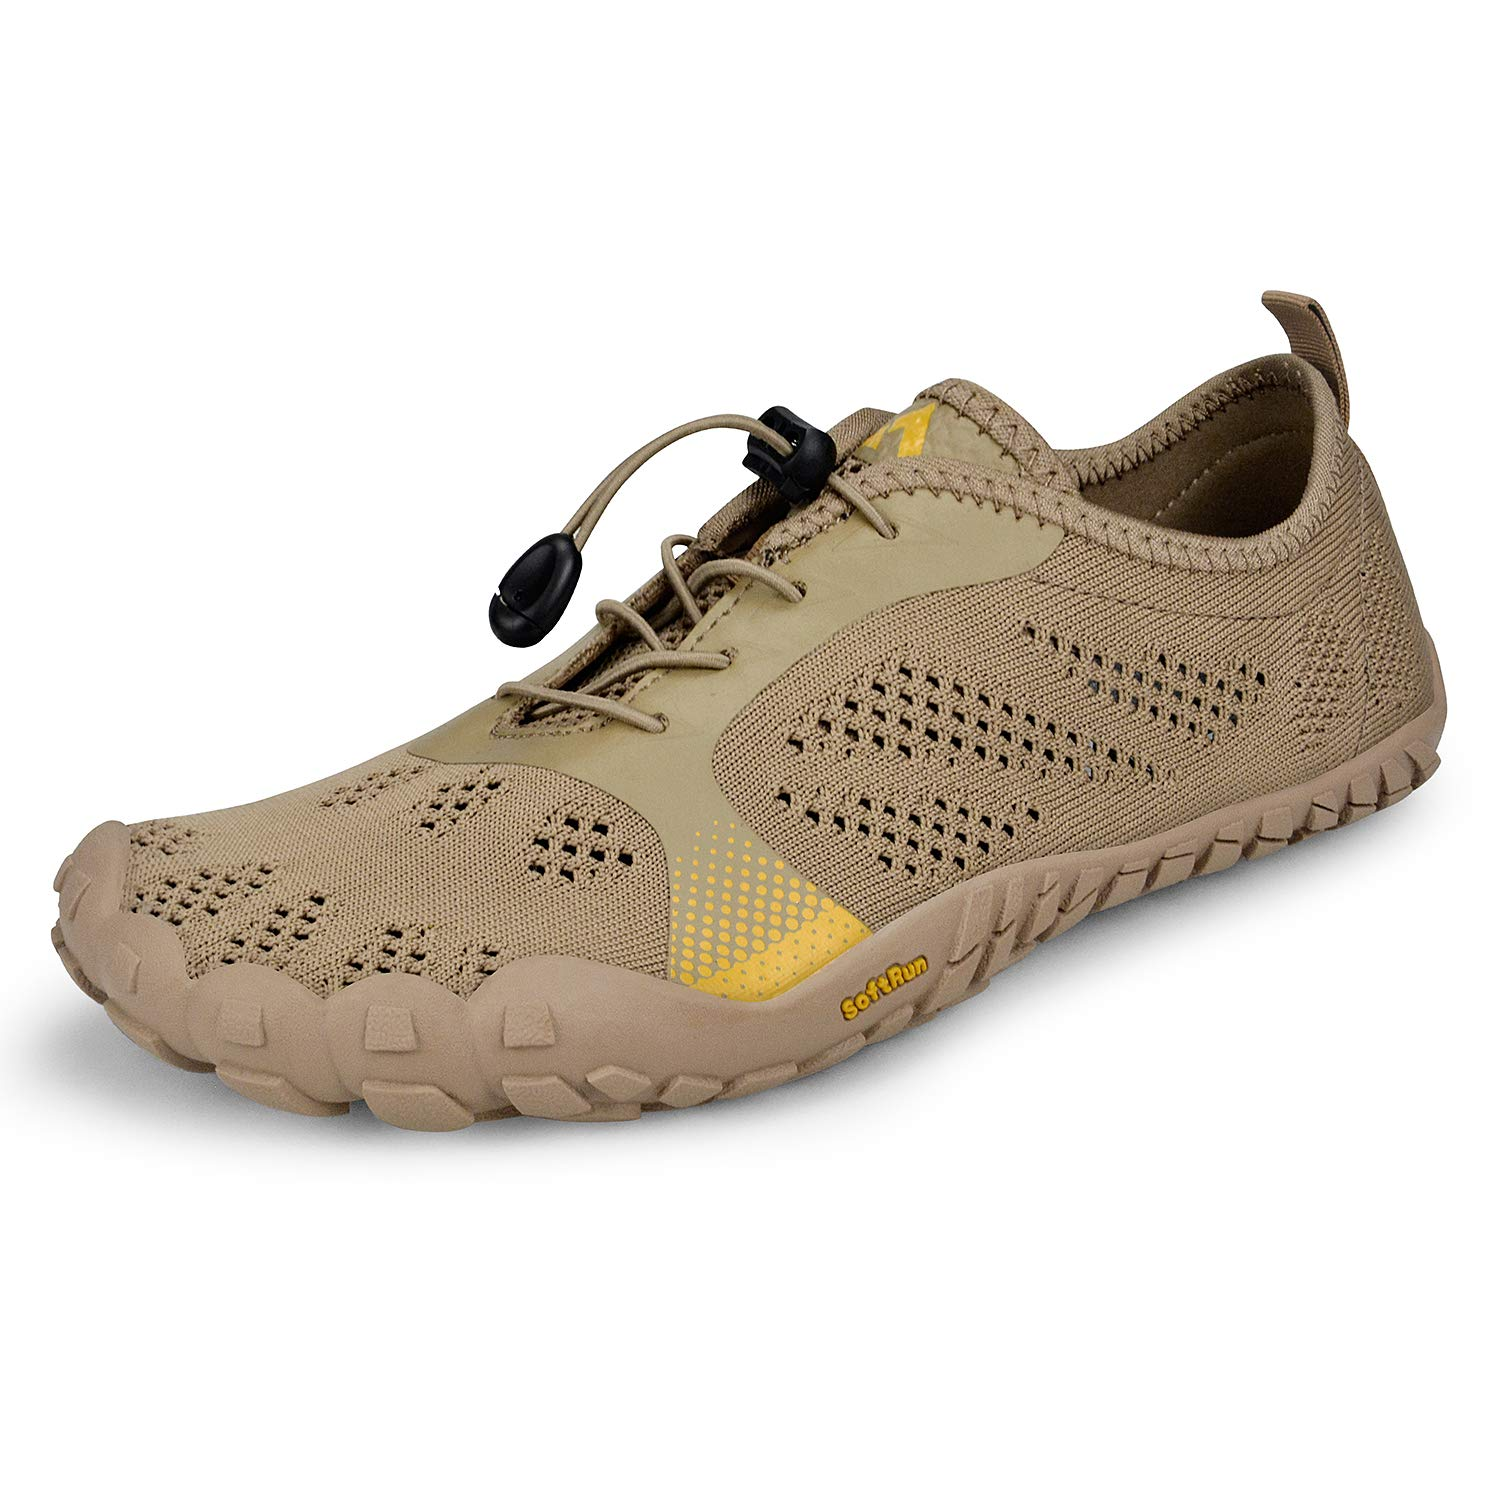 Troadlop Mesh Running Shoes Outdoor Athletic Breathable Quick-Drying Barefoot Running Shoes for Men 6.5 Khaki